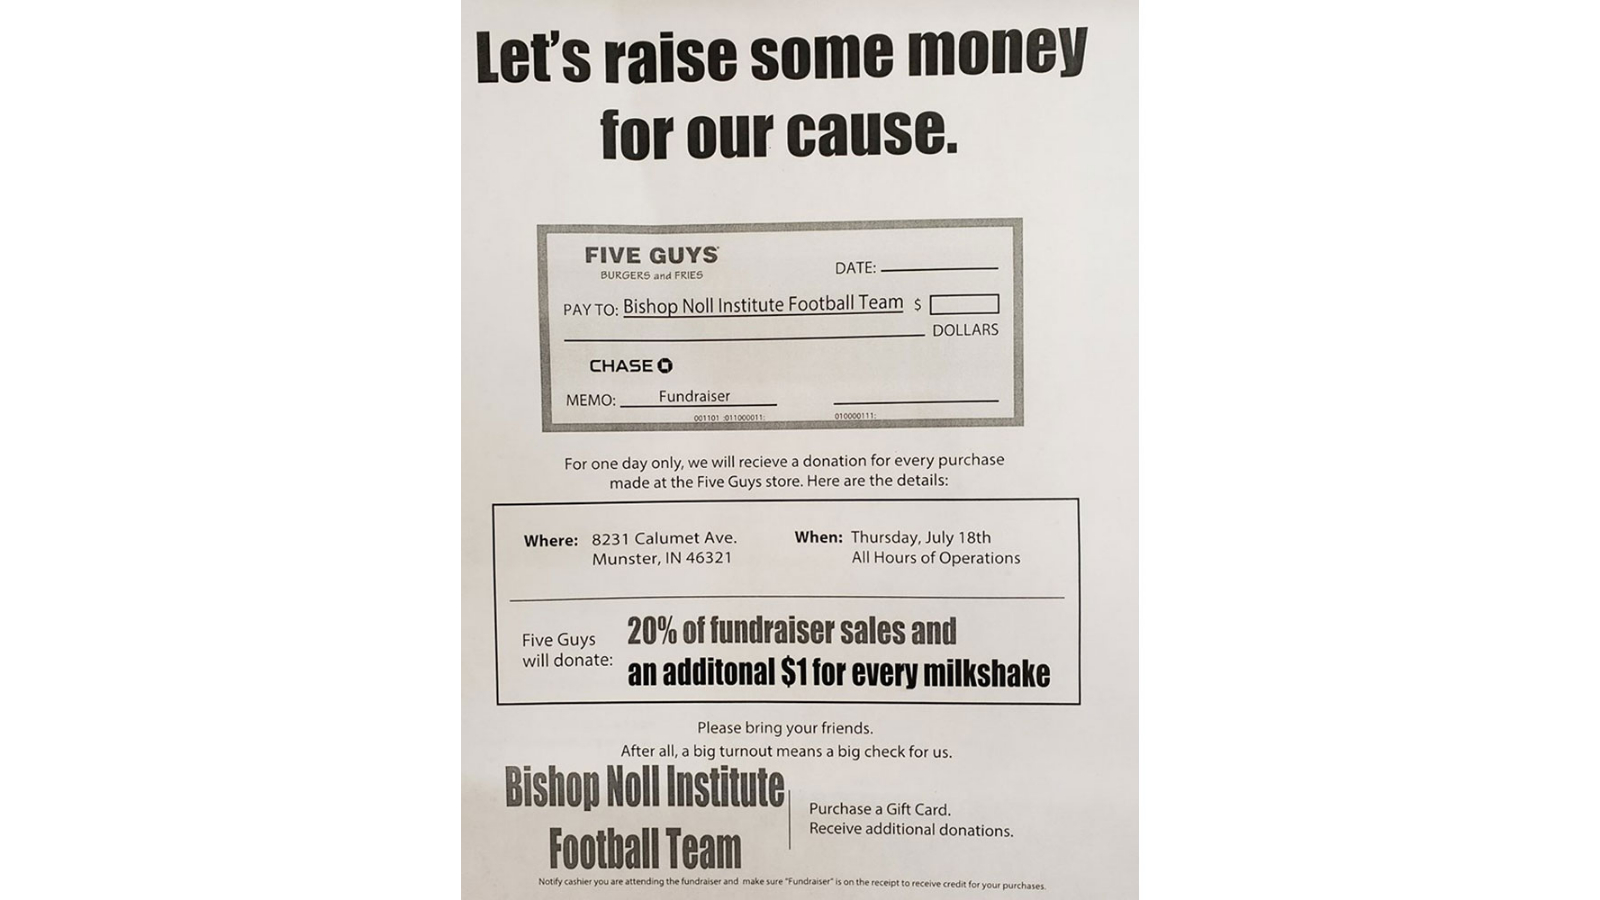 DINE TODAY AT FIVE GUYS, HELP FOOTBALL TEAM!